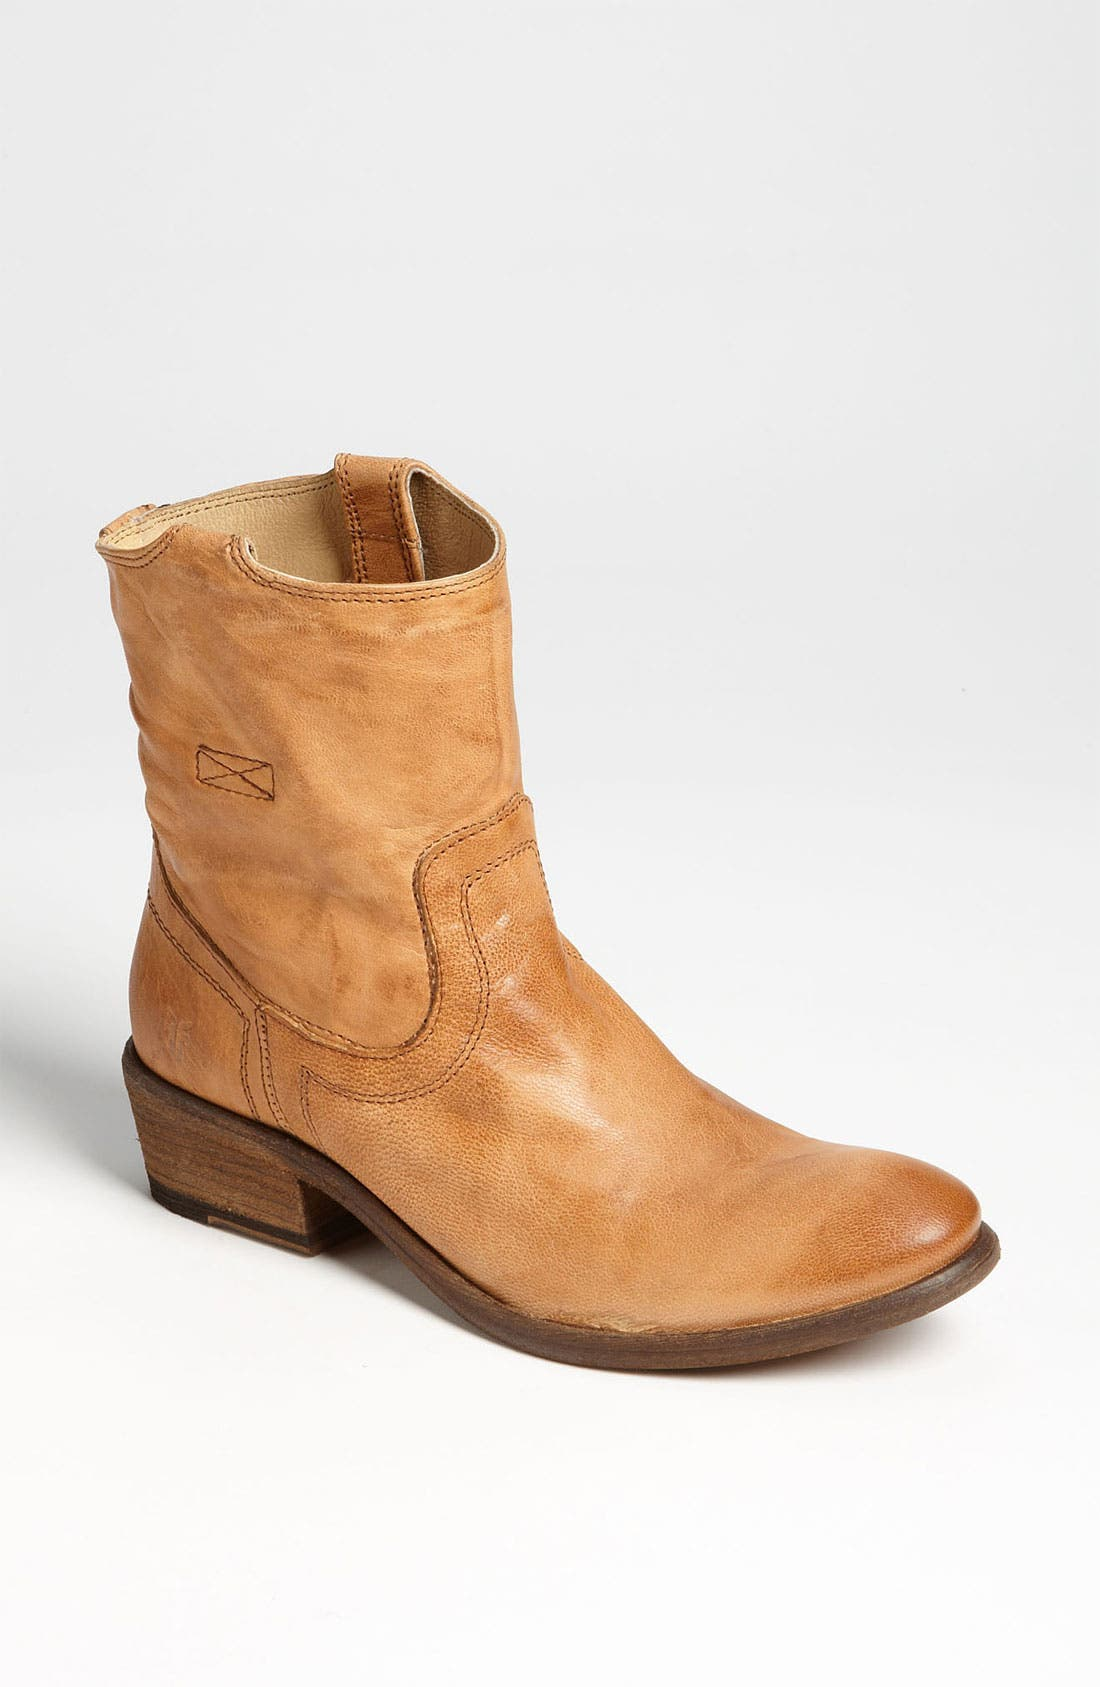 Alternate Image 1 Selected - Frye 'Carson Tab' Short Boot